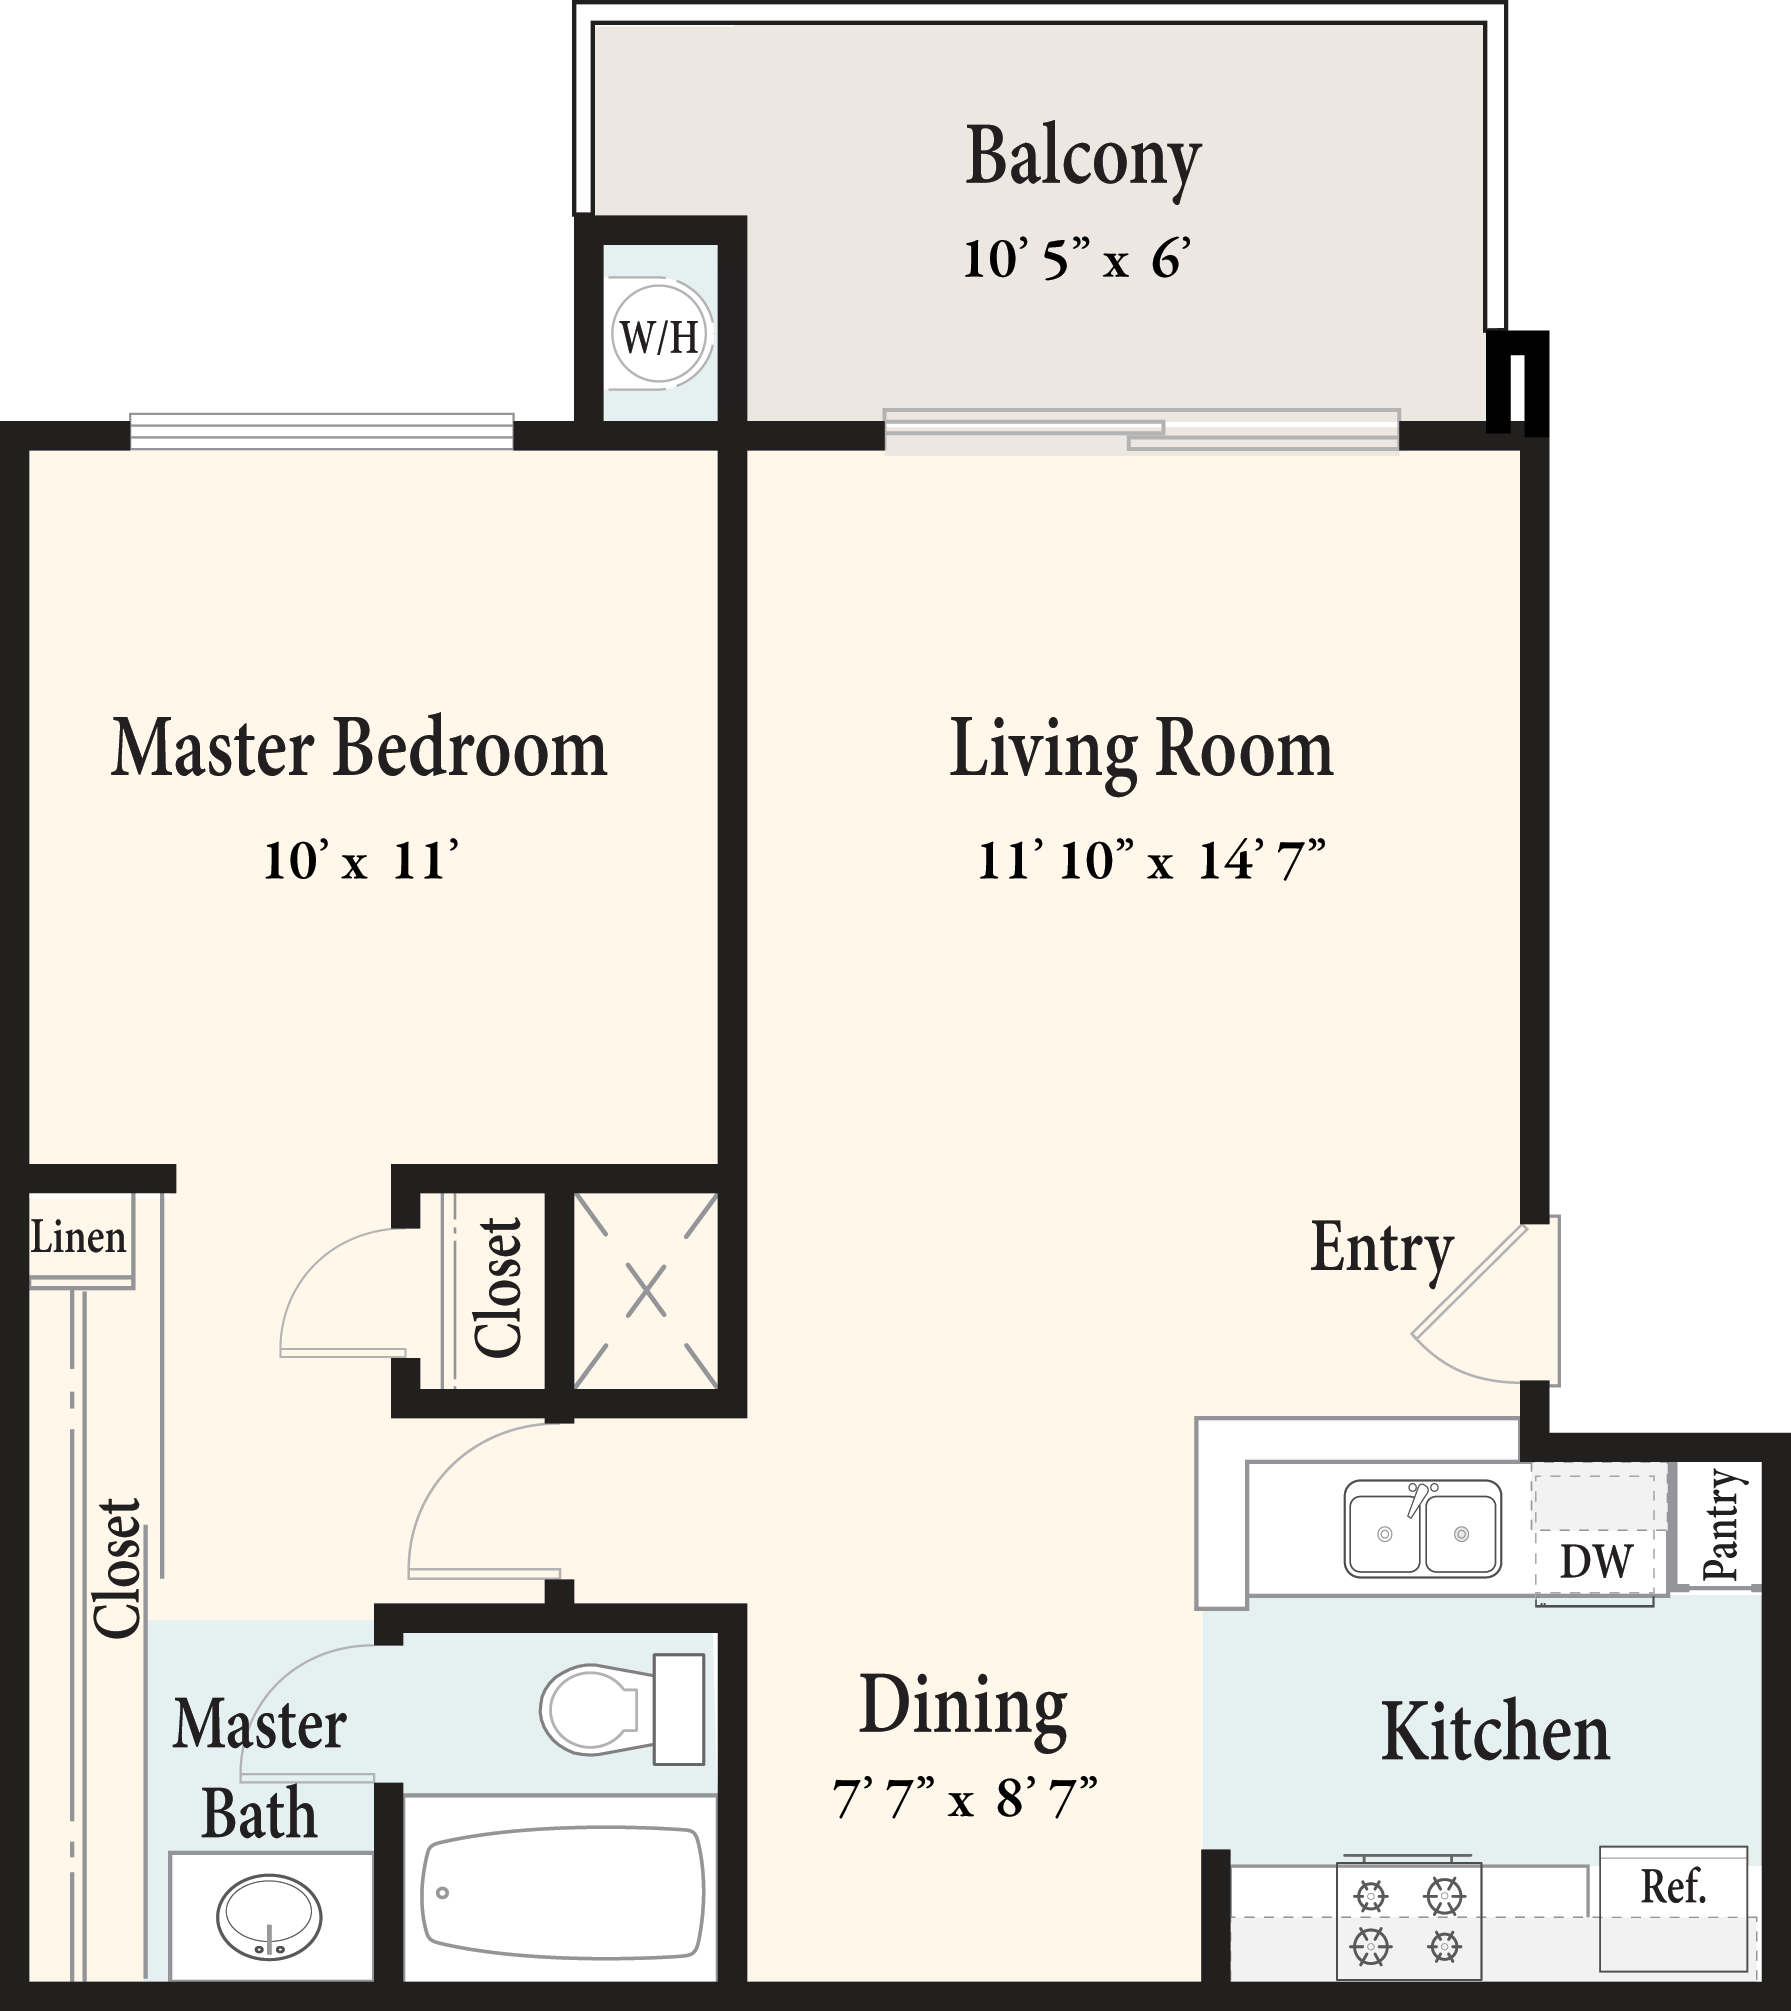 Plan B 2nd Floor